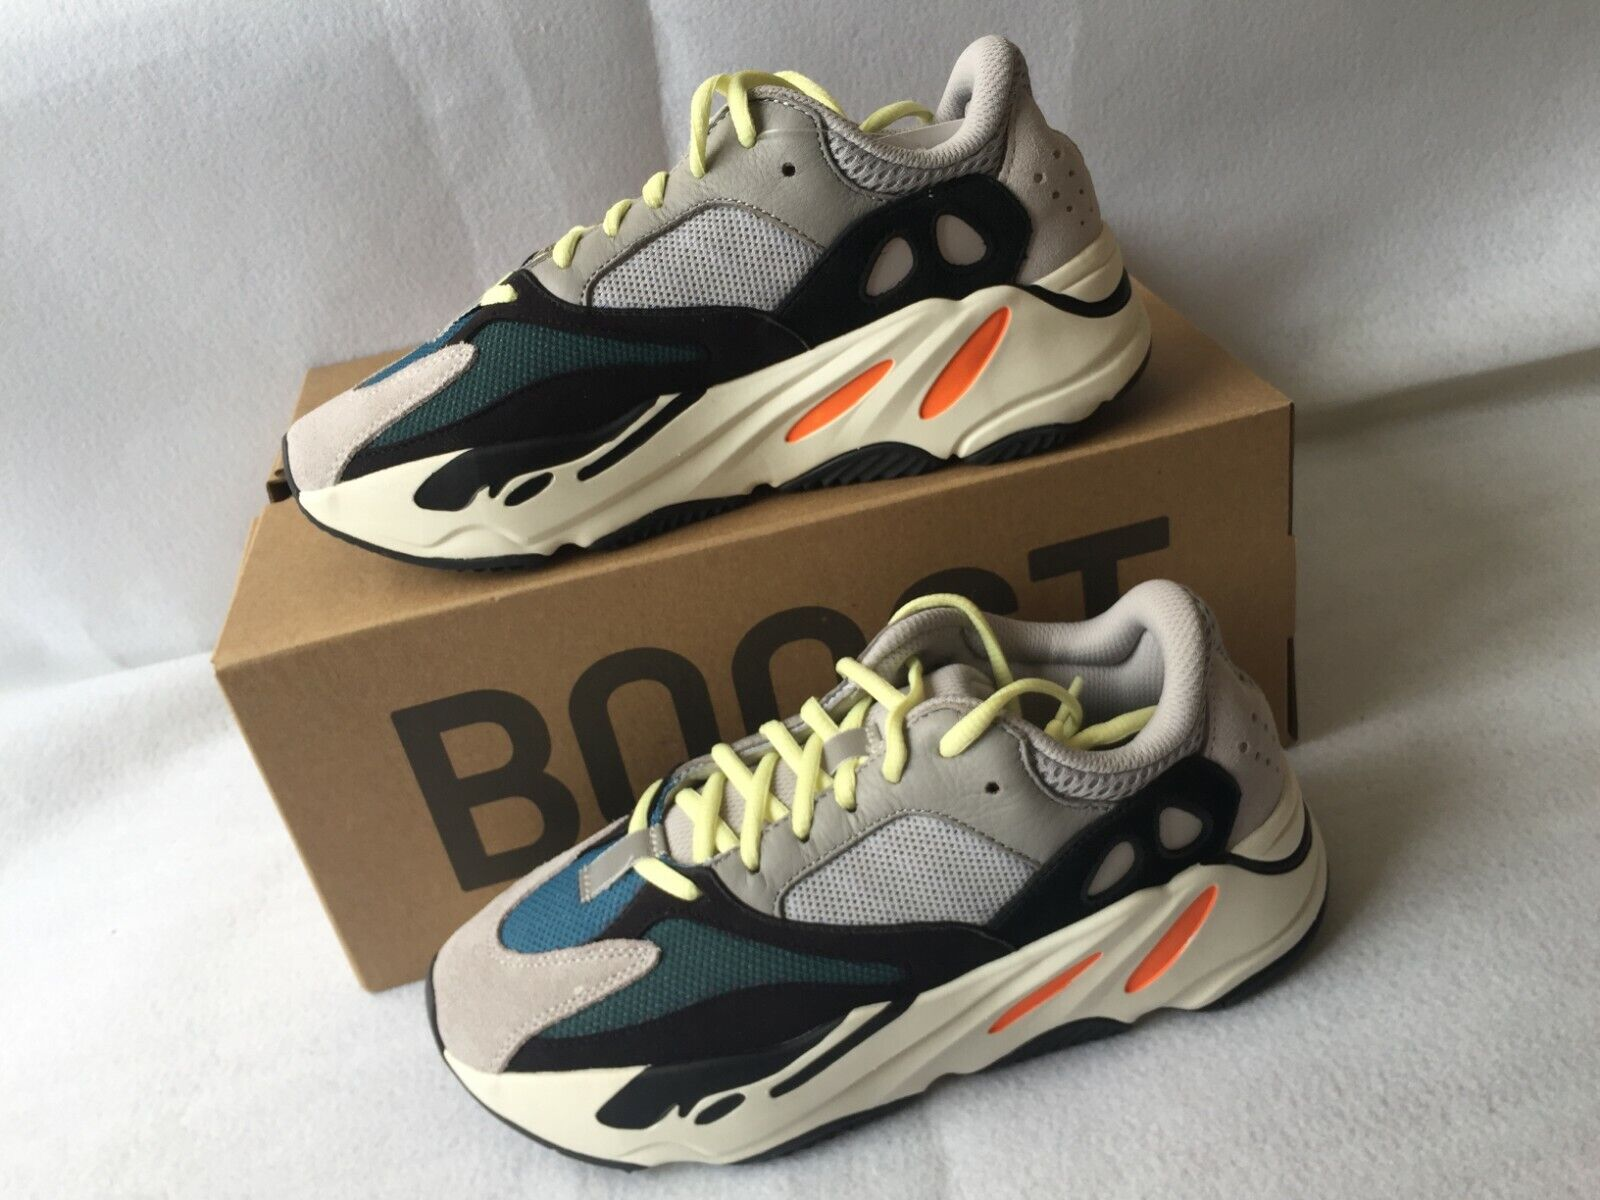 Adidas Yeezy Boost 700 Wave courirner taille us homme 11 NEUF